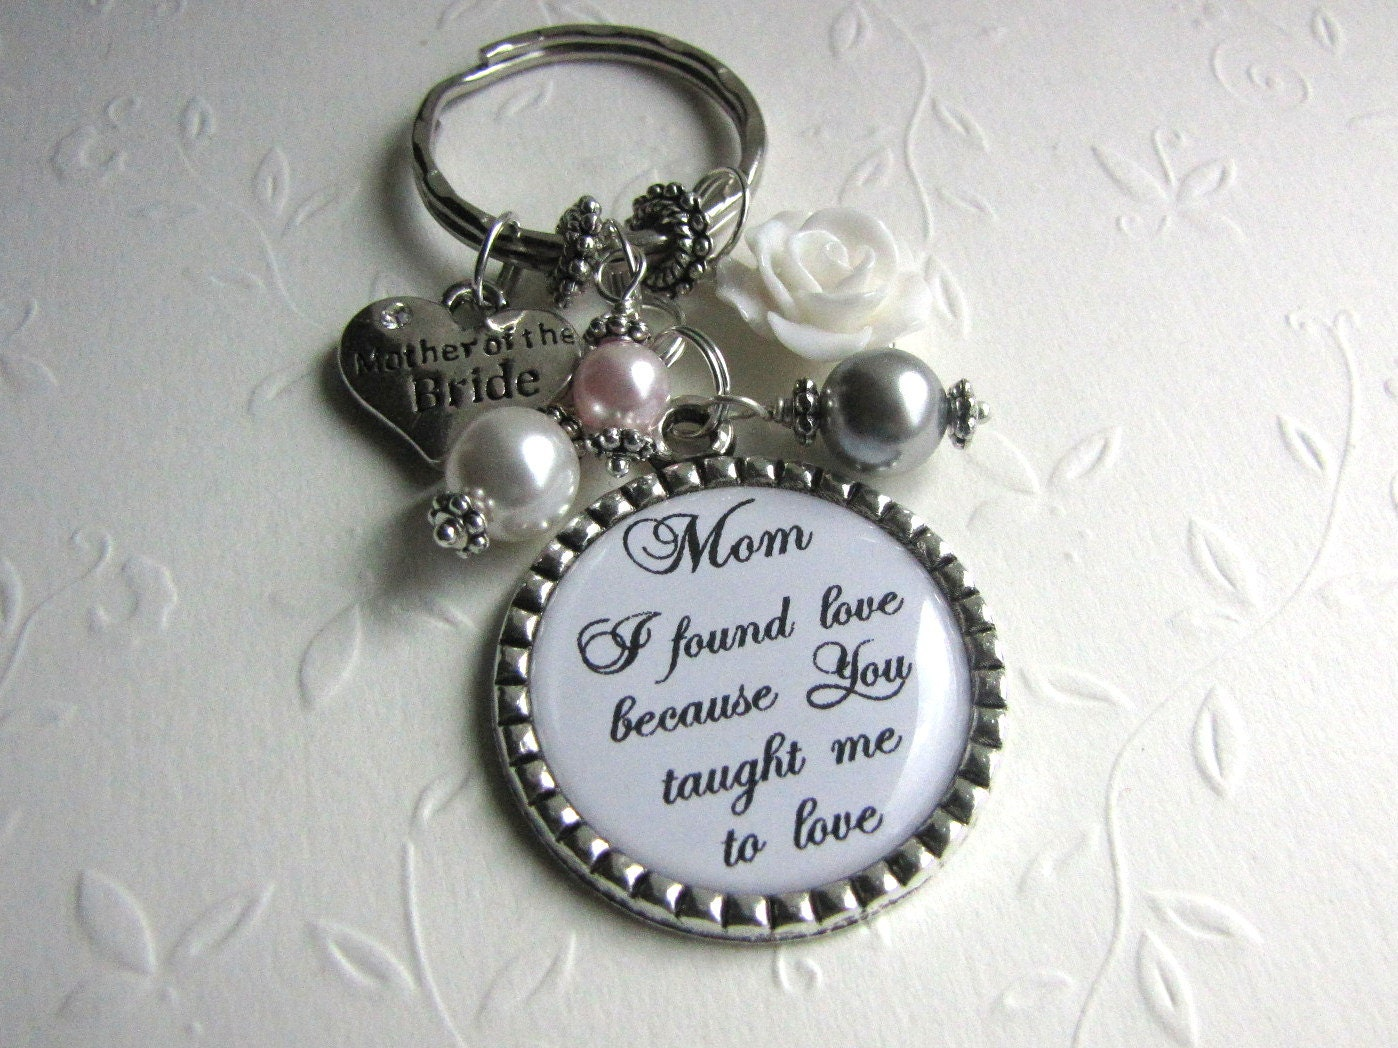 Mother Daughter Wedding Gifts: Wedding Gift For Mom Mother-of-the-Bride Gift From Daughter